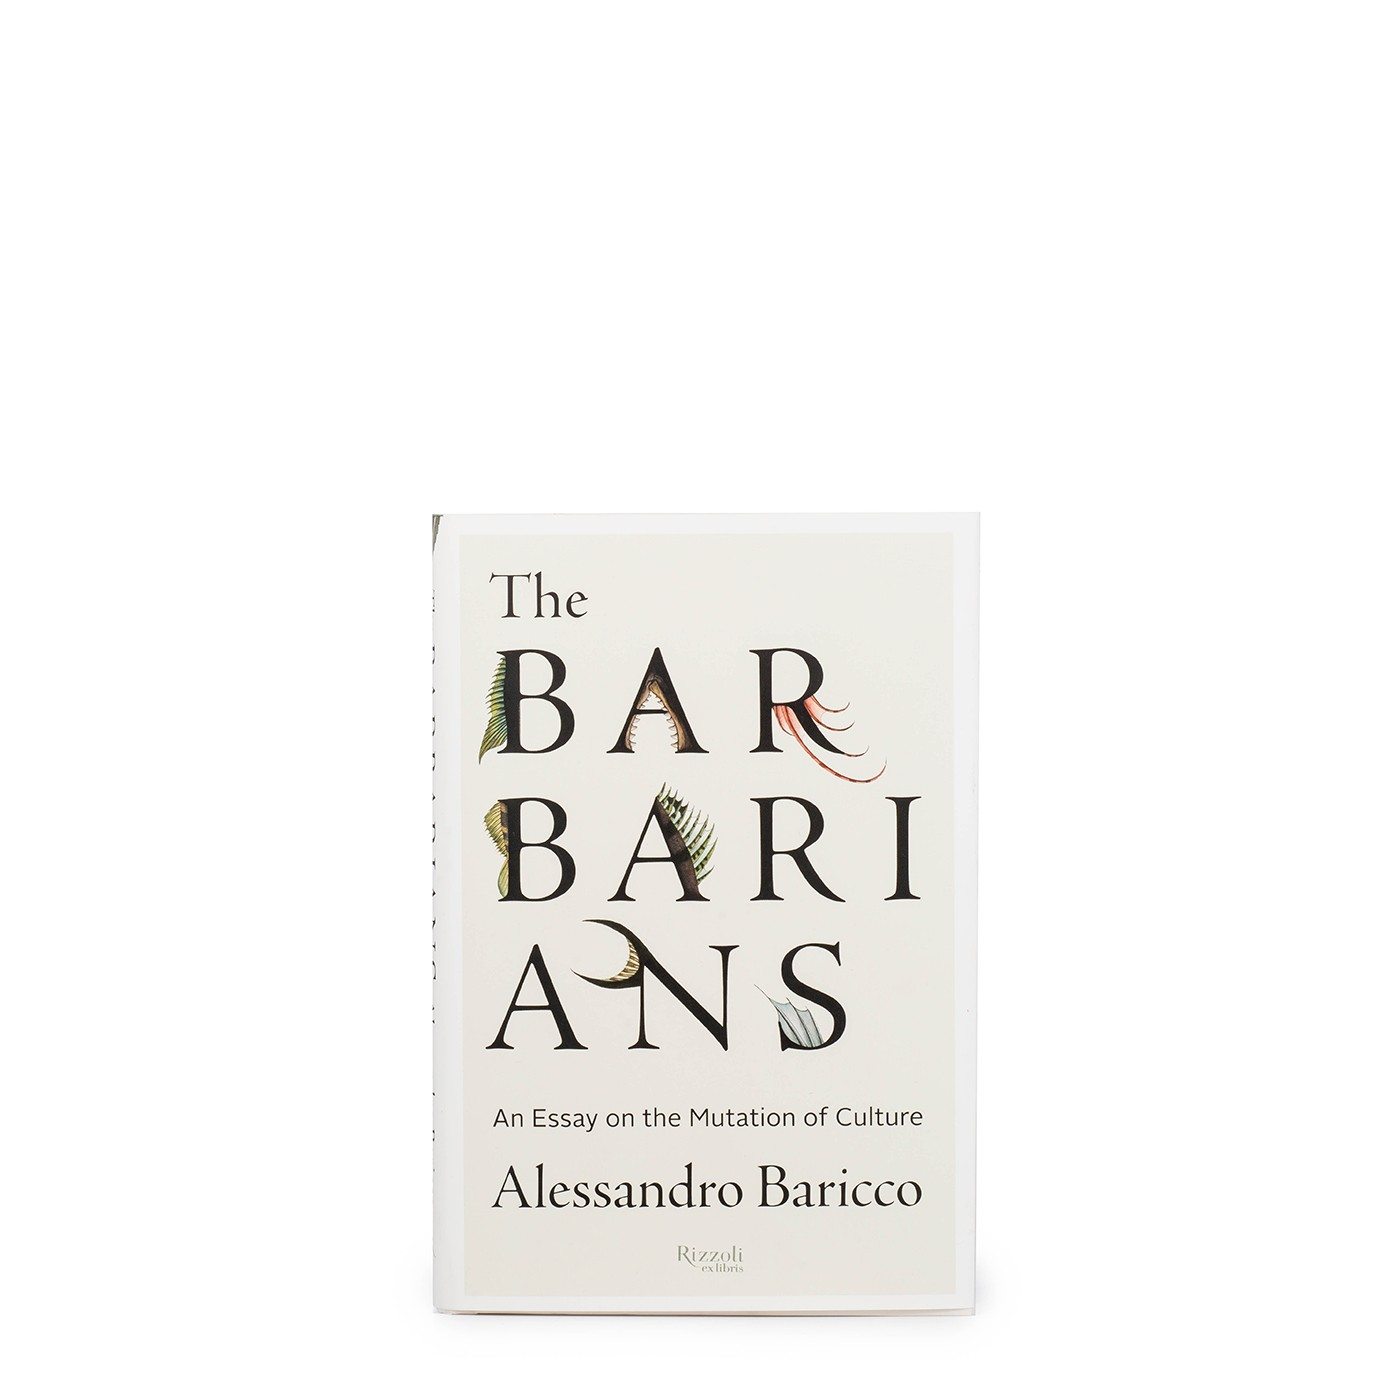 the barbarians alessandro baricco eataly the barbarians an essay on the mutation of culture hardcover